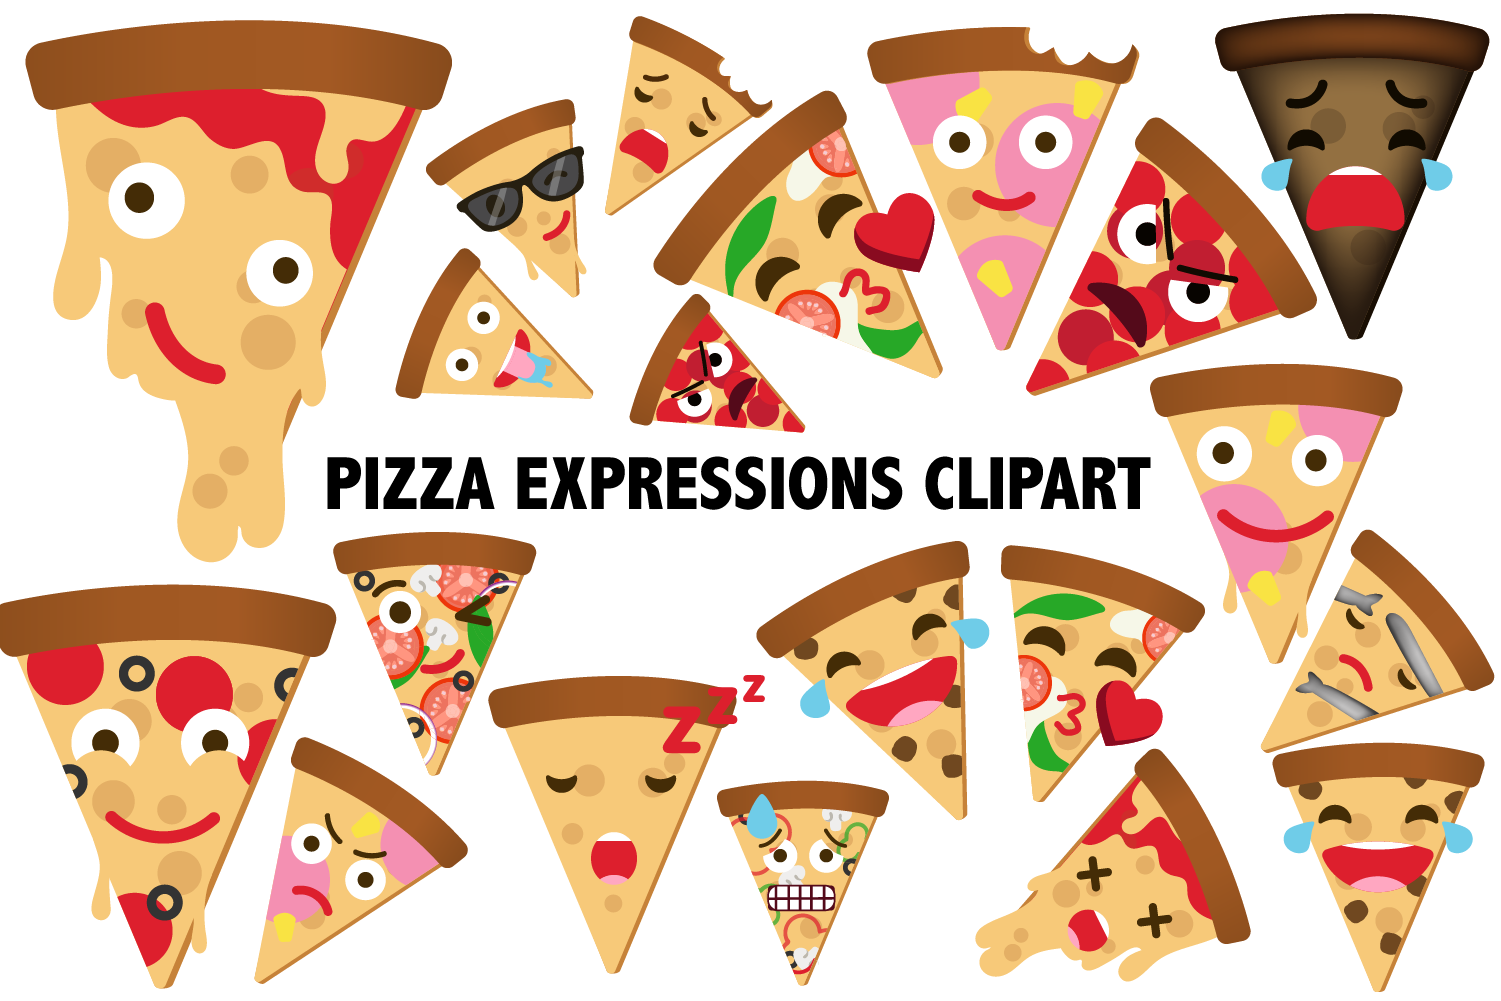 Pizza Expressions Clipart example image 1